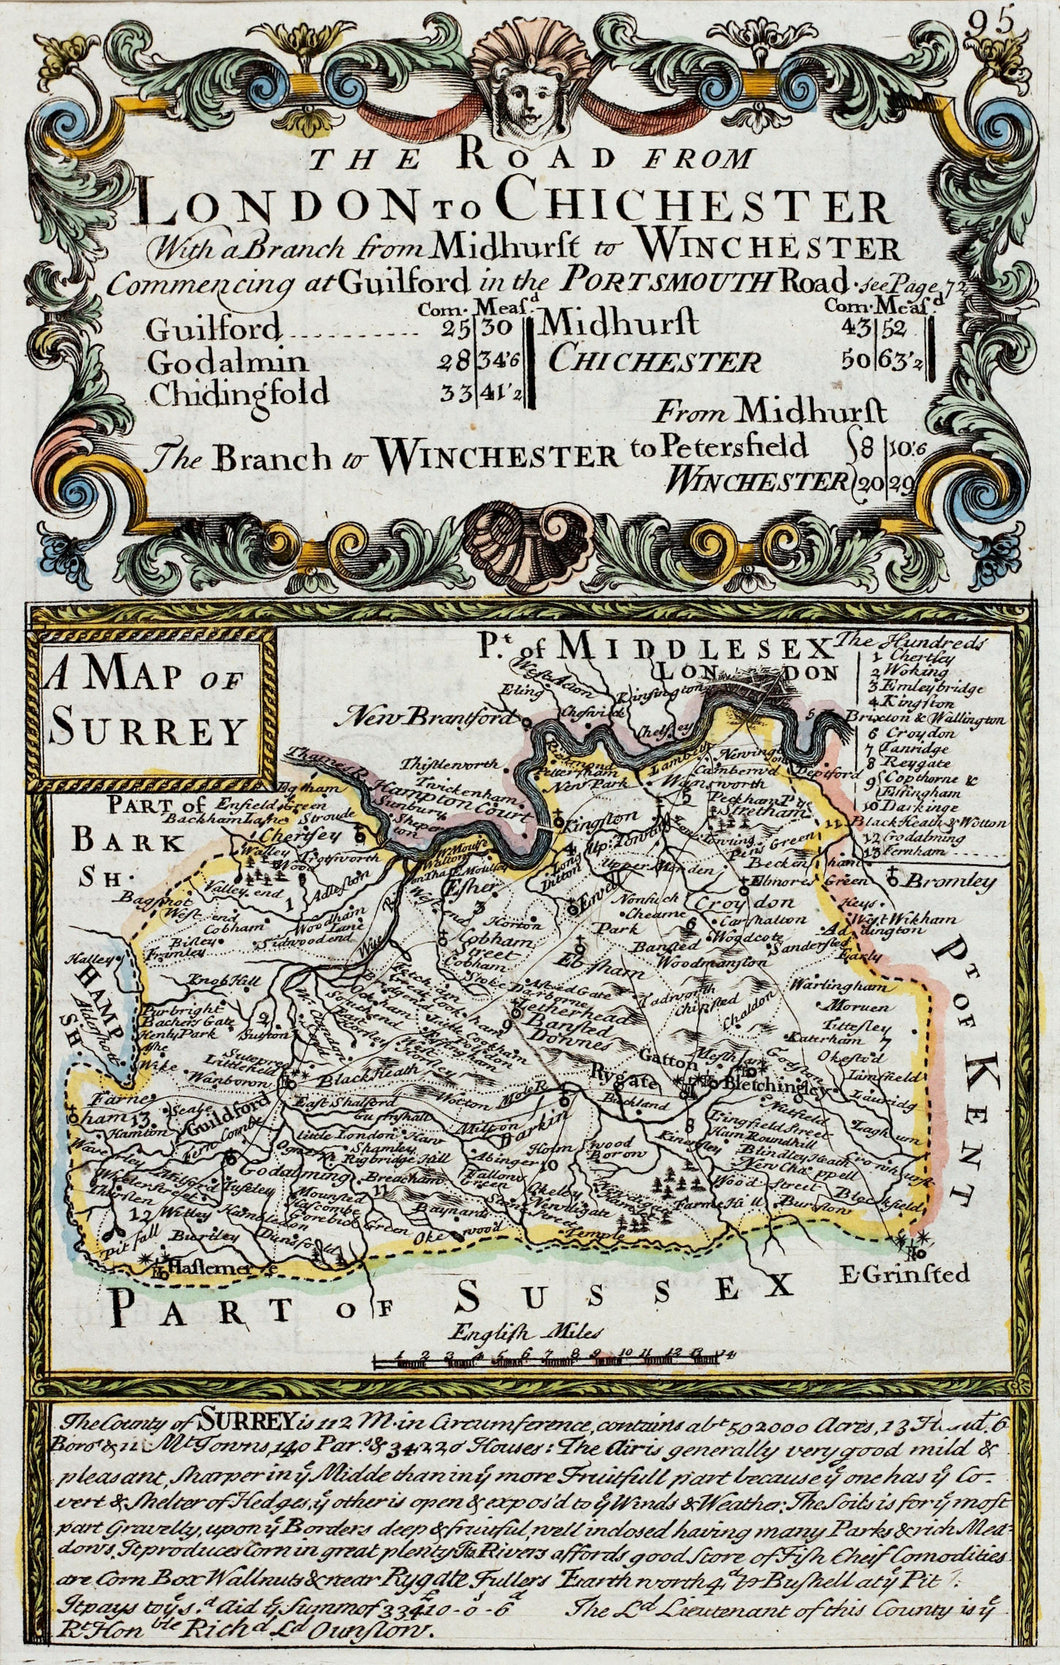 The Road from London to Chichester - Antique Map by Owen Bowen circa 1720